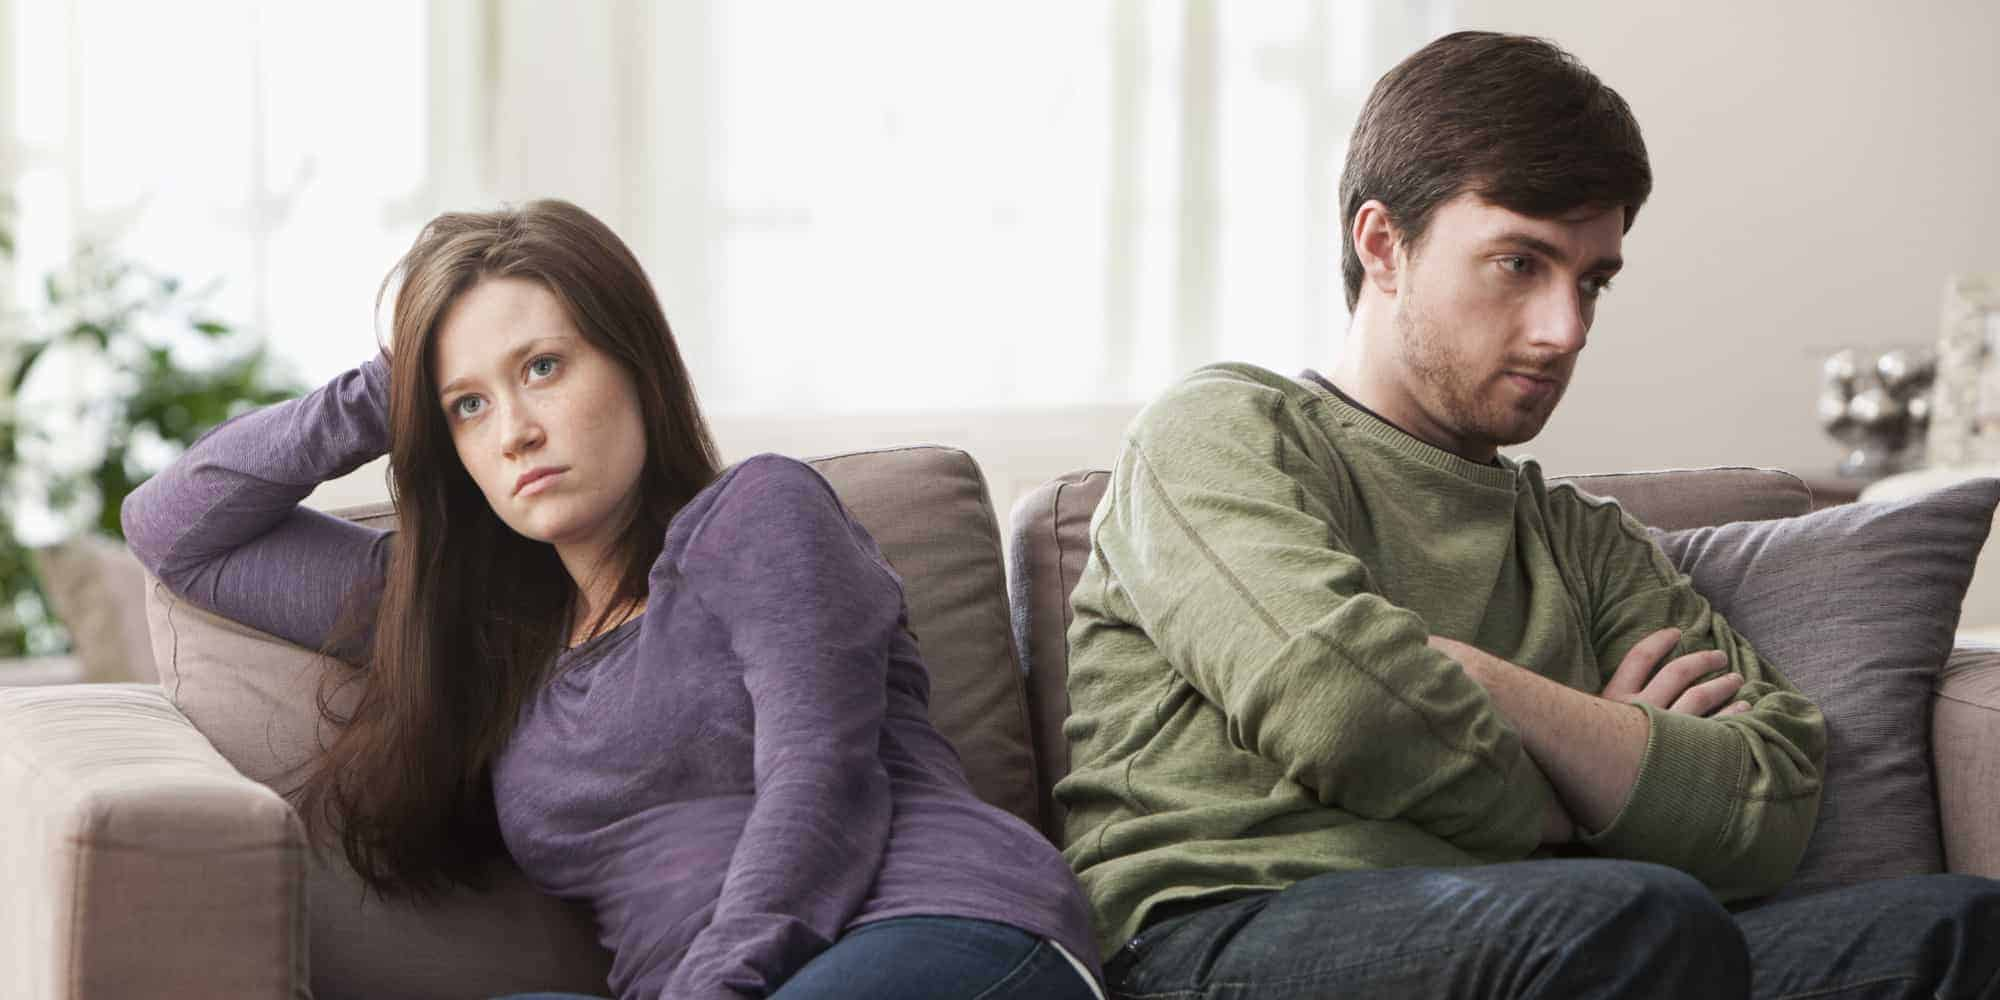 relationship isn't working - photo of unhappy couple